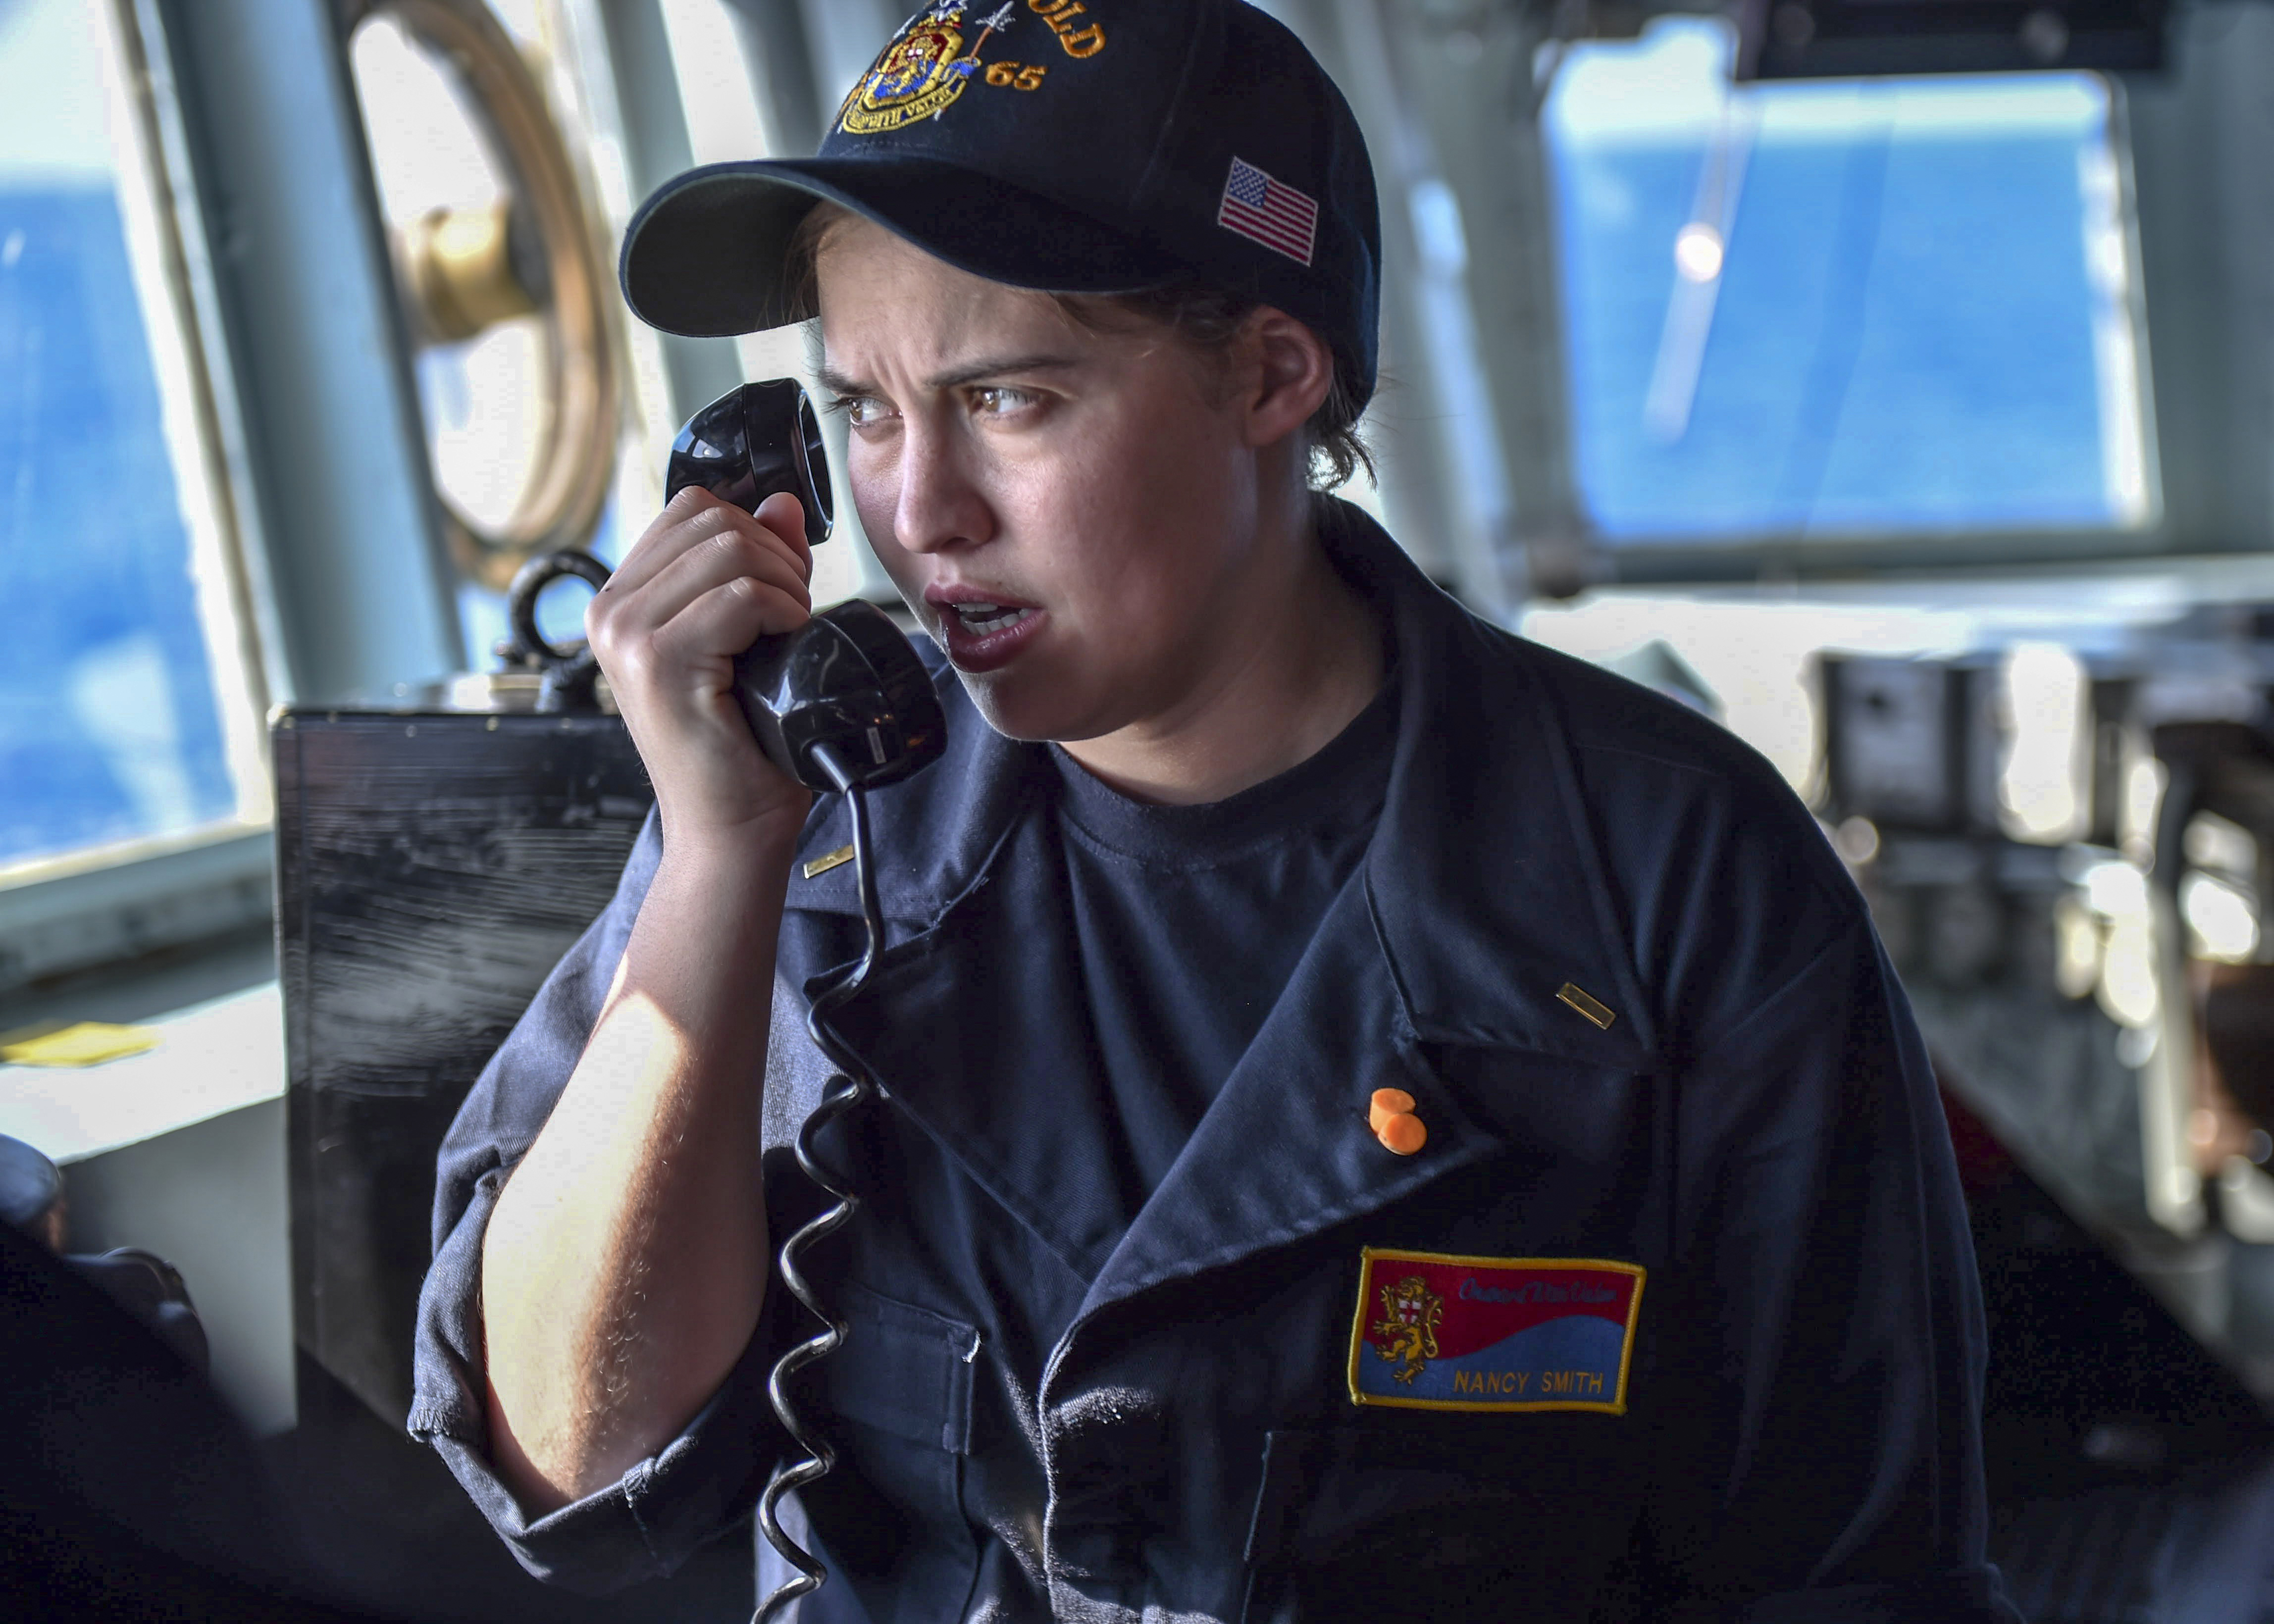 Ensign Nancy Smith uses the bridge-to-bridge radio aboard the Arleigh Burke-class guided-missile destroyer USS Benfold (DDG 65) to speak with a marine patrol craft during Multisail 18. Multisail is a bilateral training exercise improving interoperability between the U.S. and Japanese forces. This exercise benefits from realistic, shared training enhancing our ability to work together to confront any contingency. (MC1 Benjamin Dobbs/Navy)